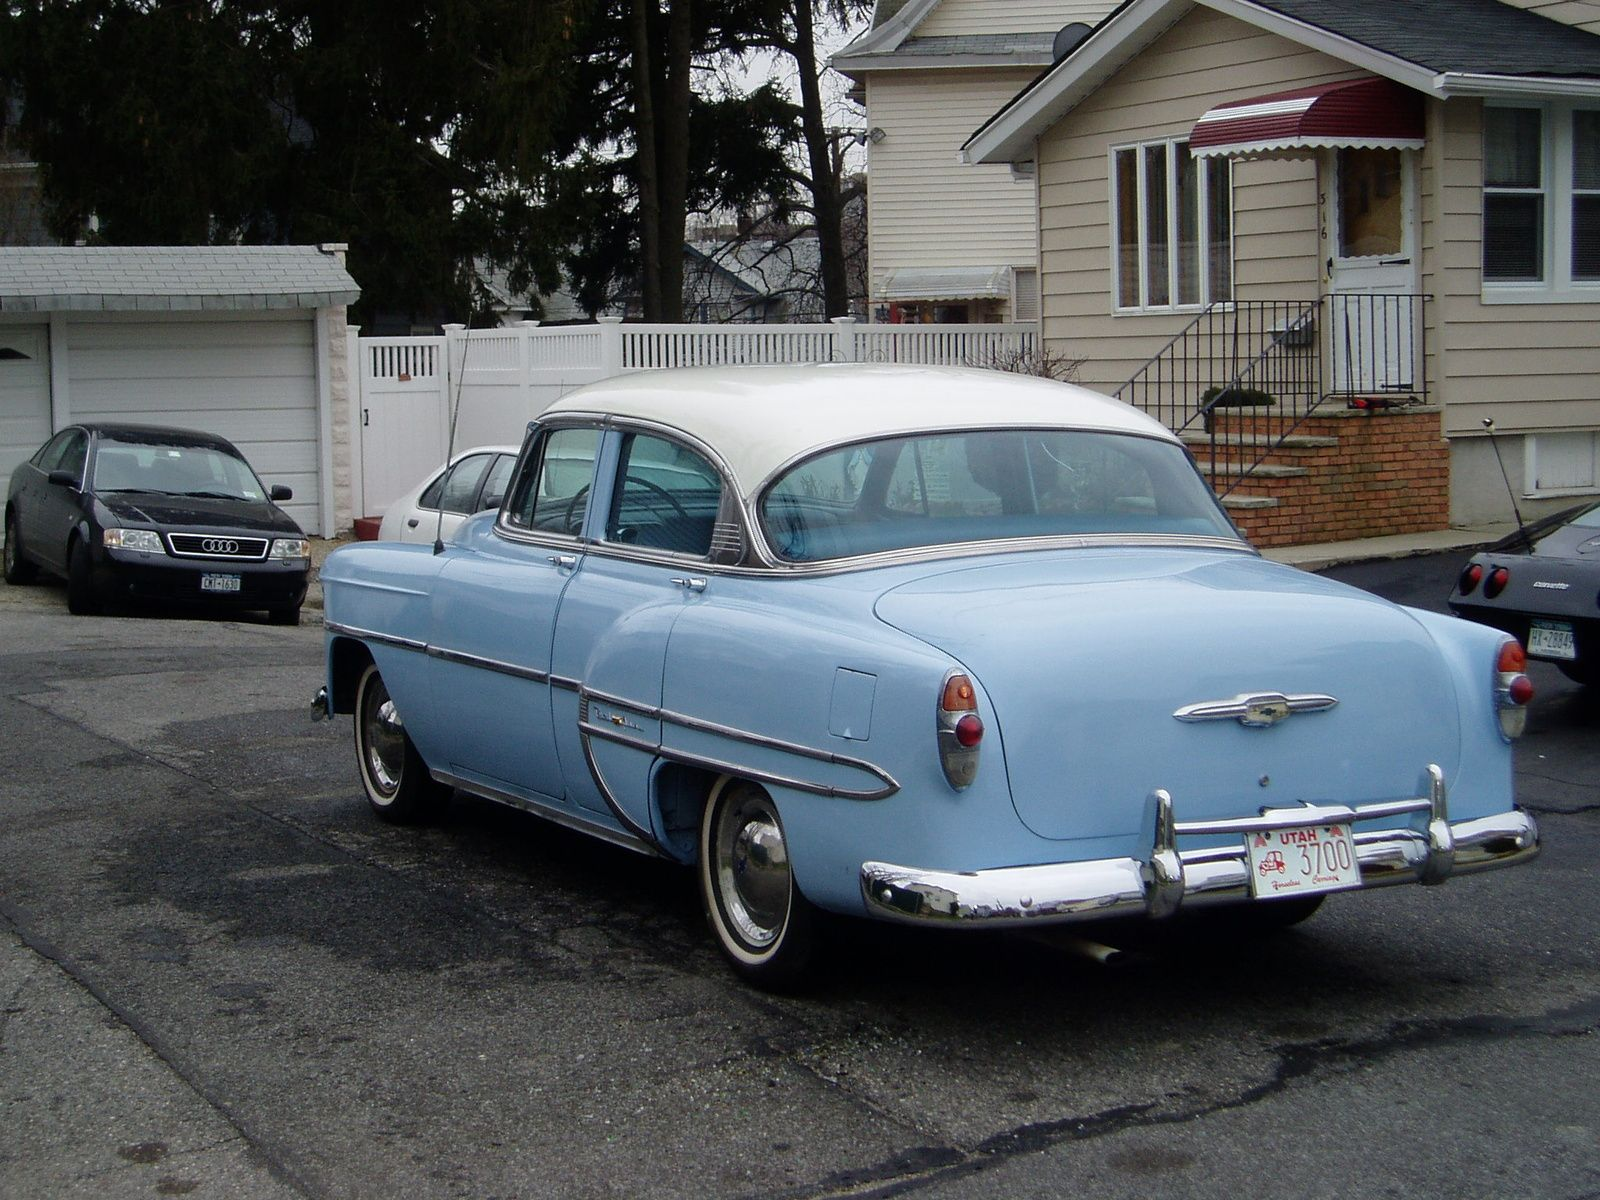 1956 chevrolet bel air for sale on classiccars com 74 - 1953 Chevy Bel Air Similar To One My Step Father James Binyon Got For